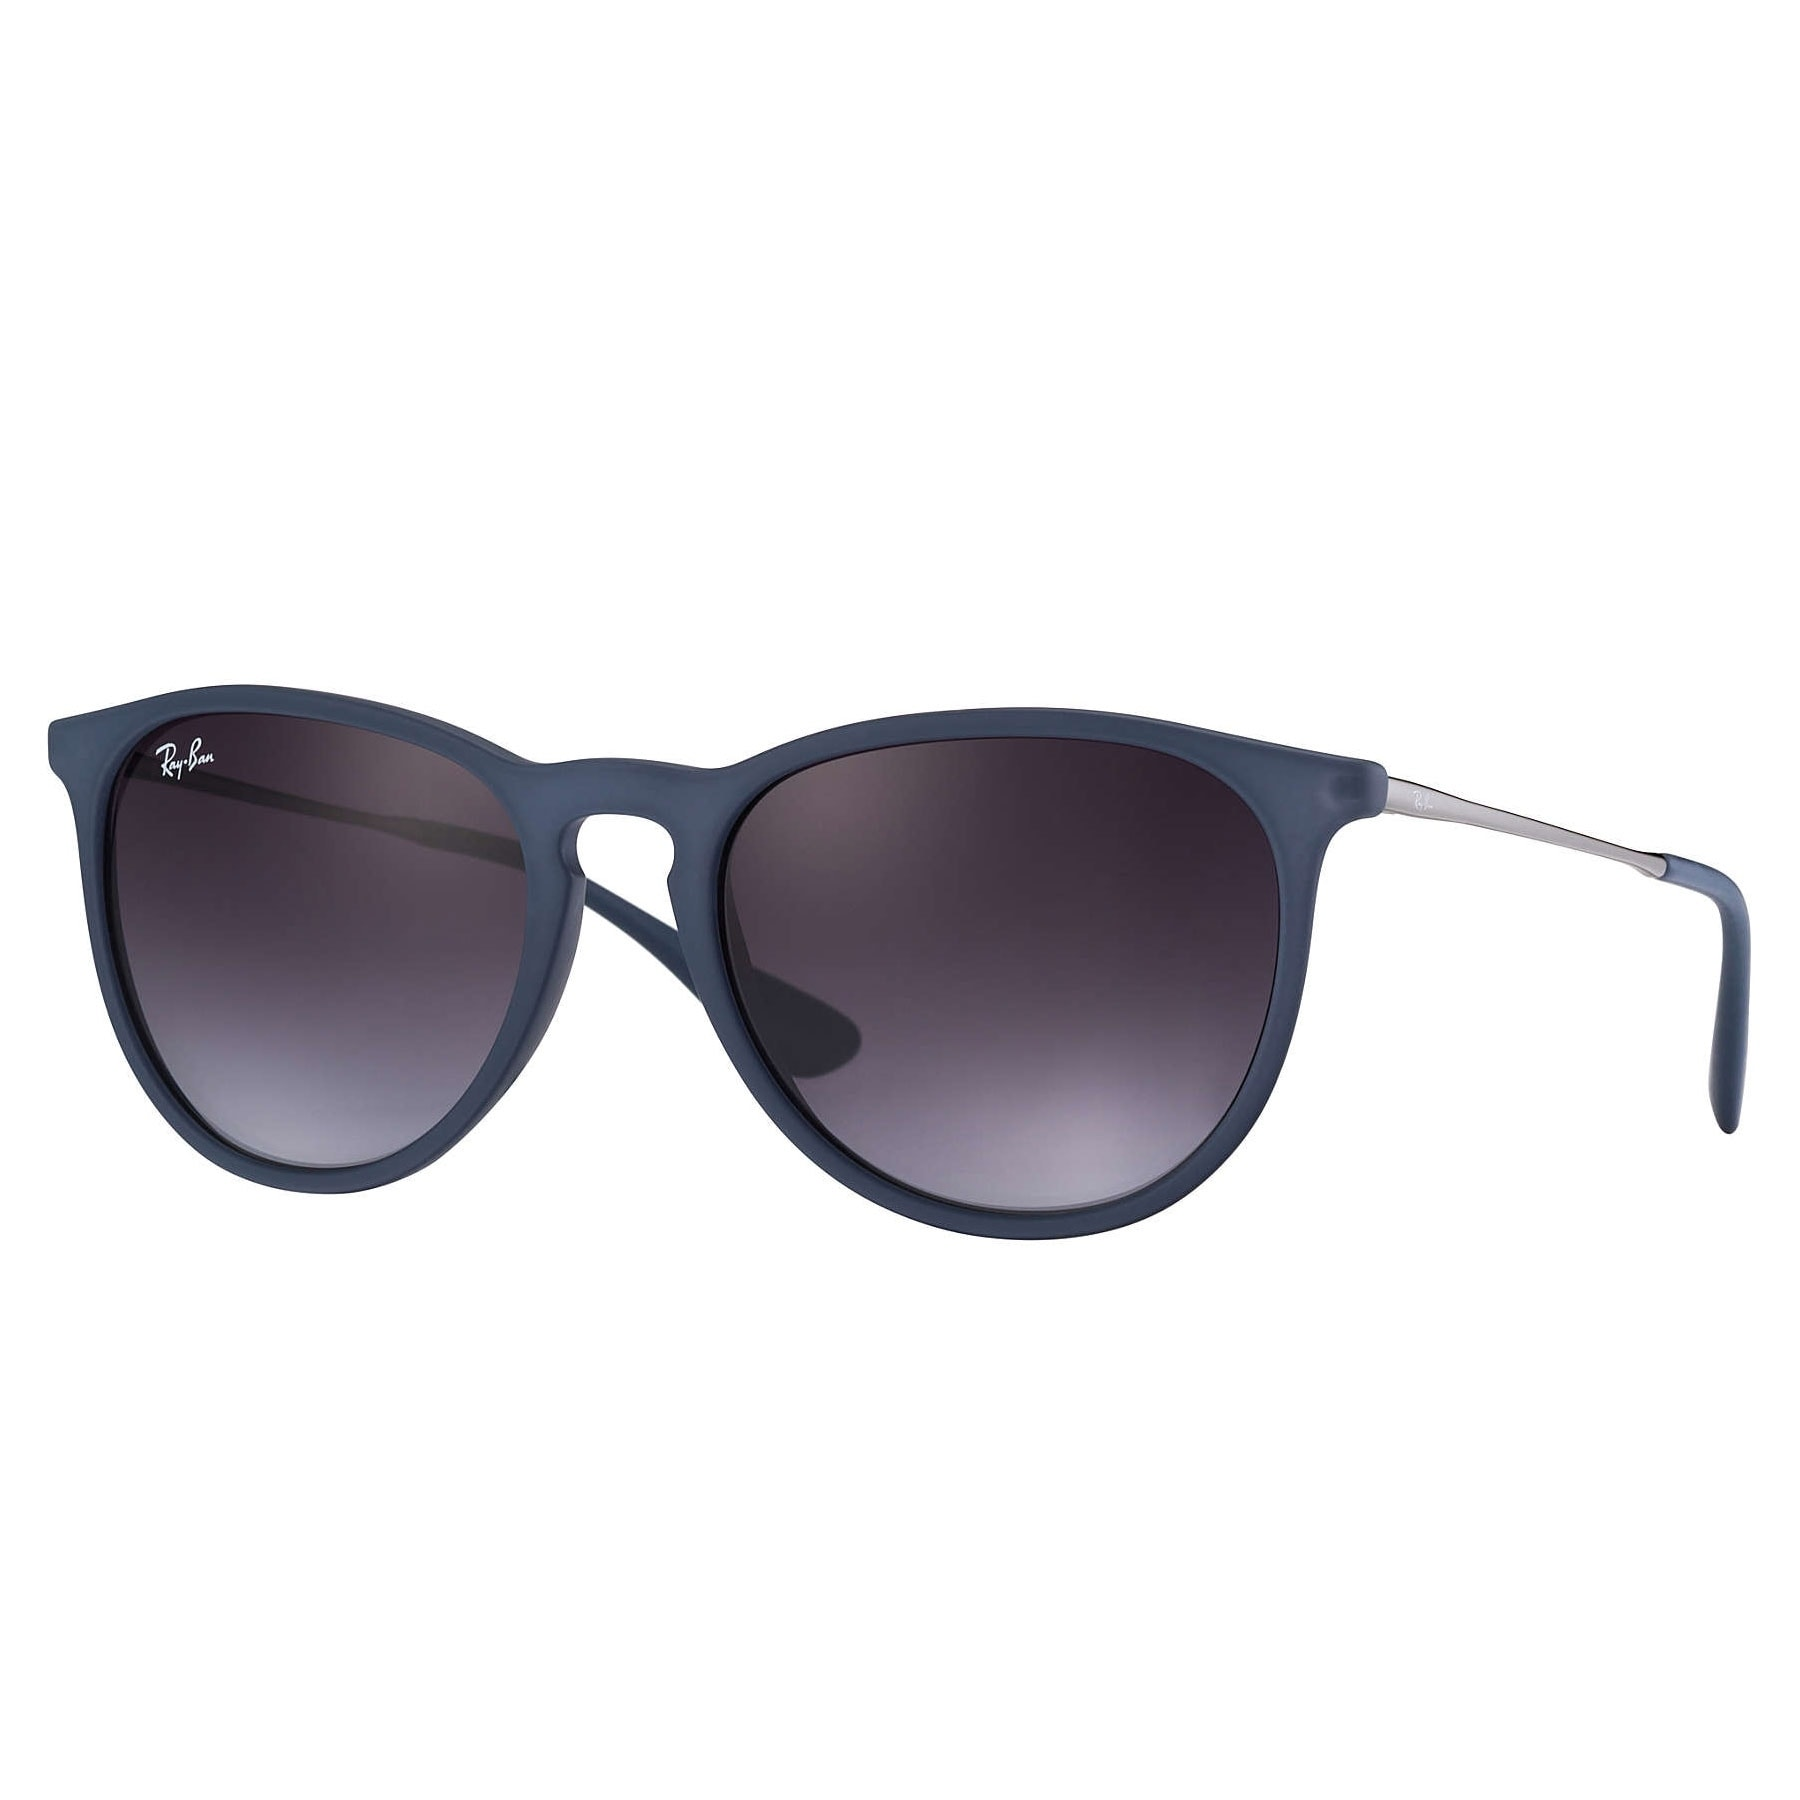 Shopping Women's At Ban Ray Great SunglassesFind Deals CxorBde